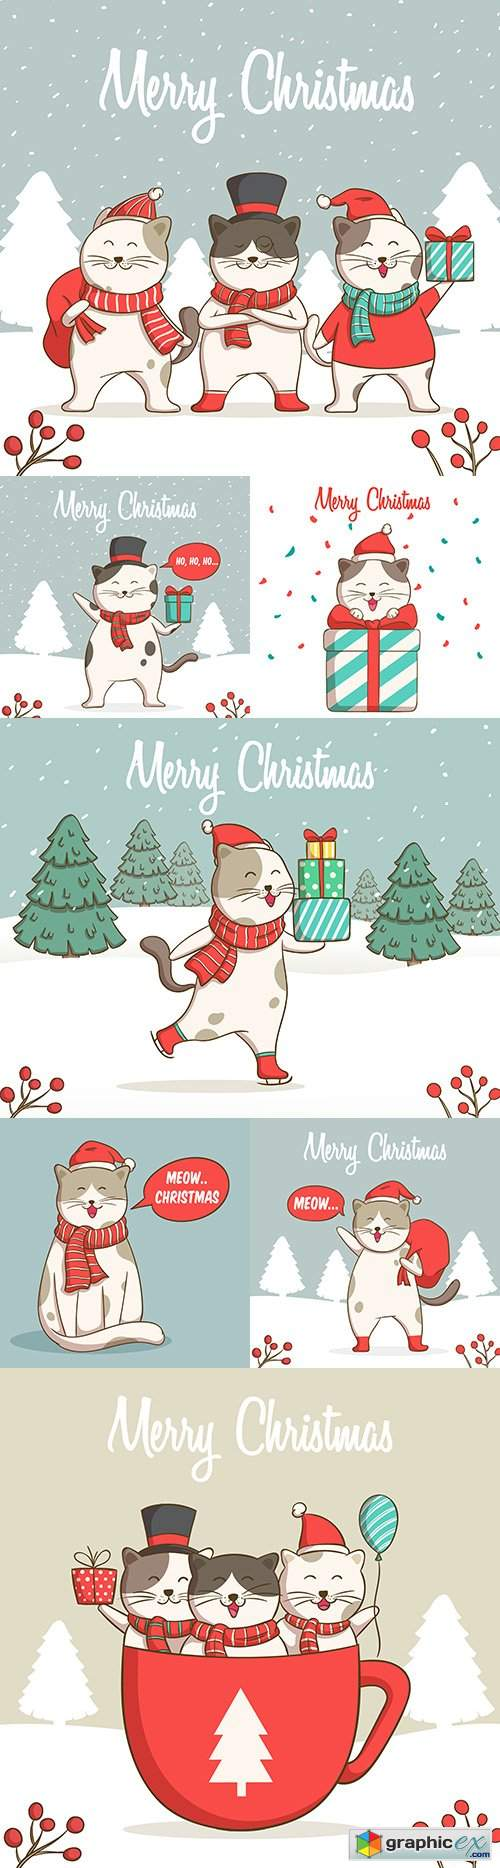 Fun Christmas illustrations of cute cats hand drawing